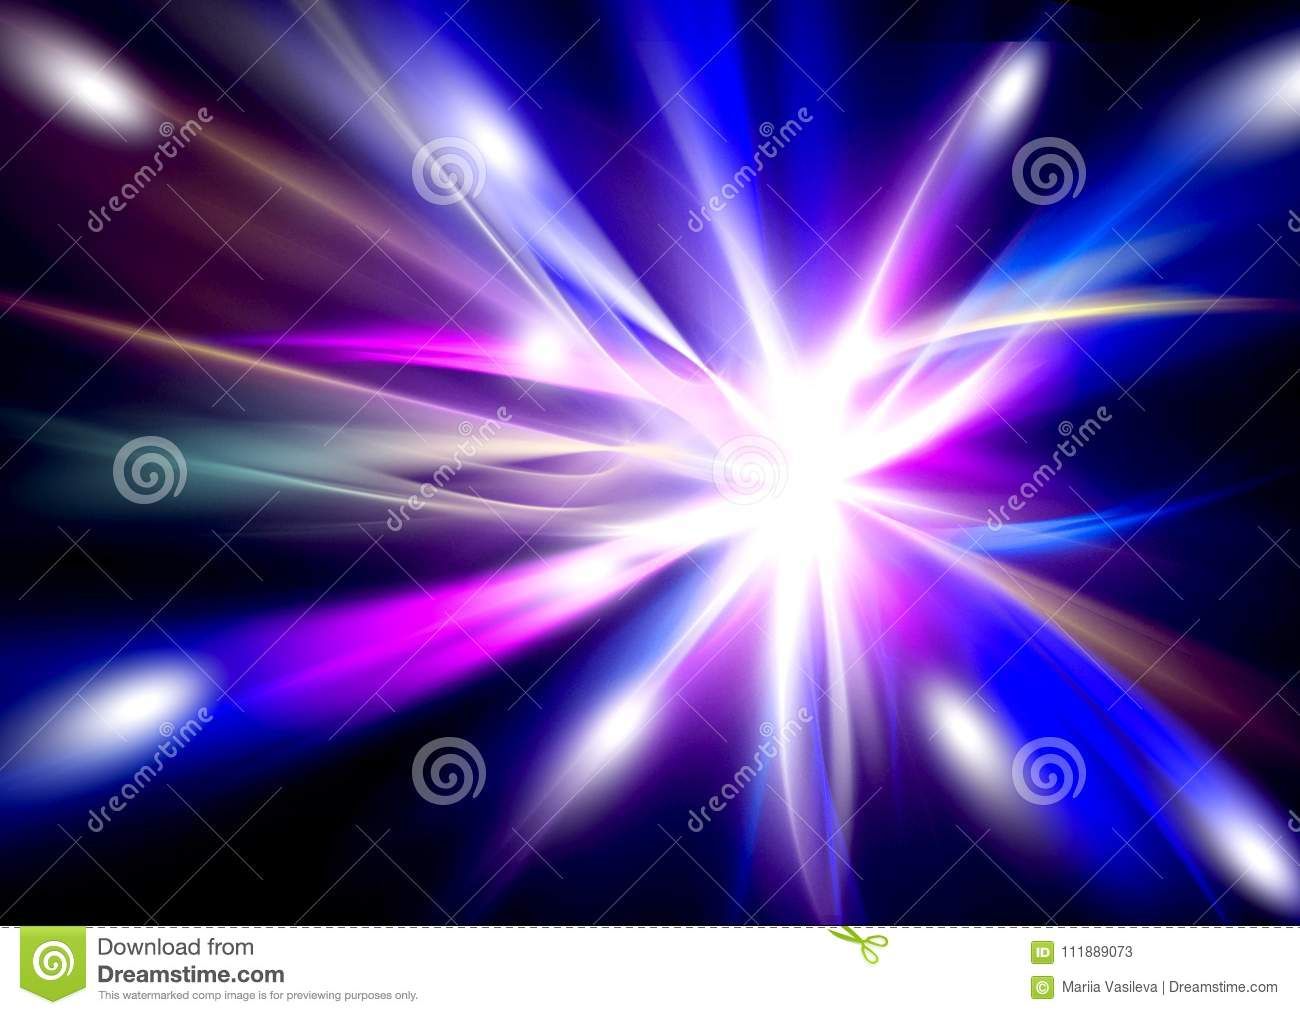 Abstract Glowing Background Of Blue And Pink Beams In The Black